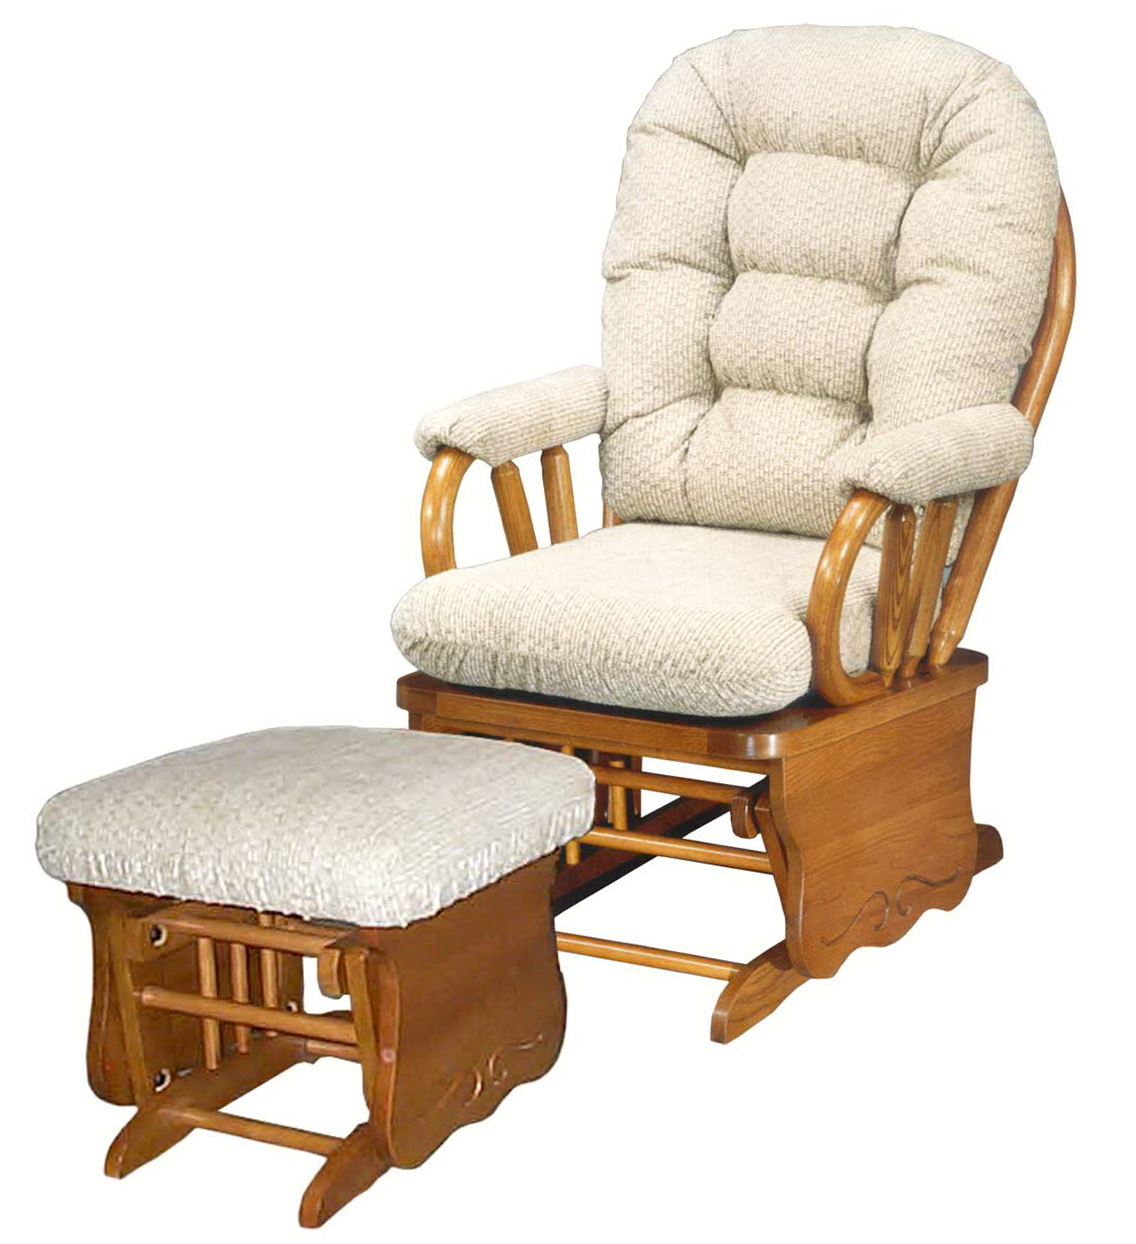 Gliding Rocking Chair Glider Chair Replacement Cushions Uk Home Design Ideas